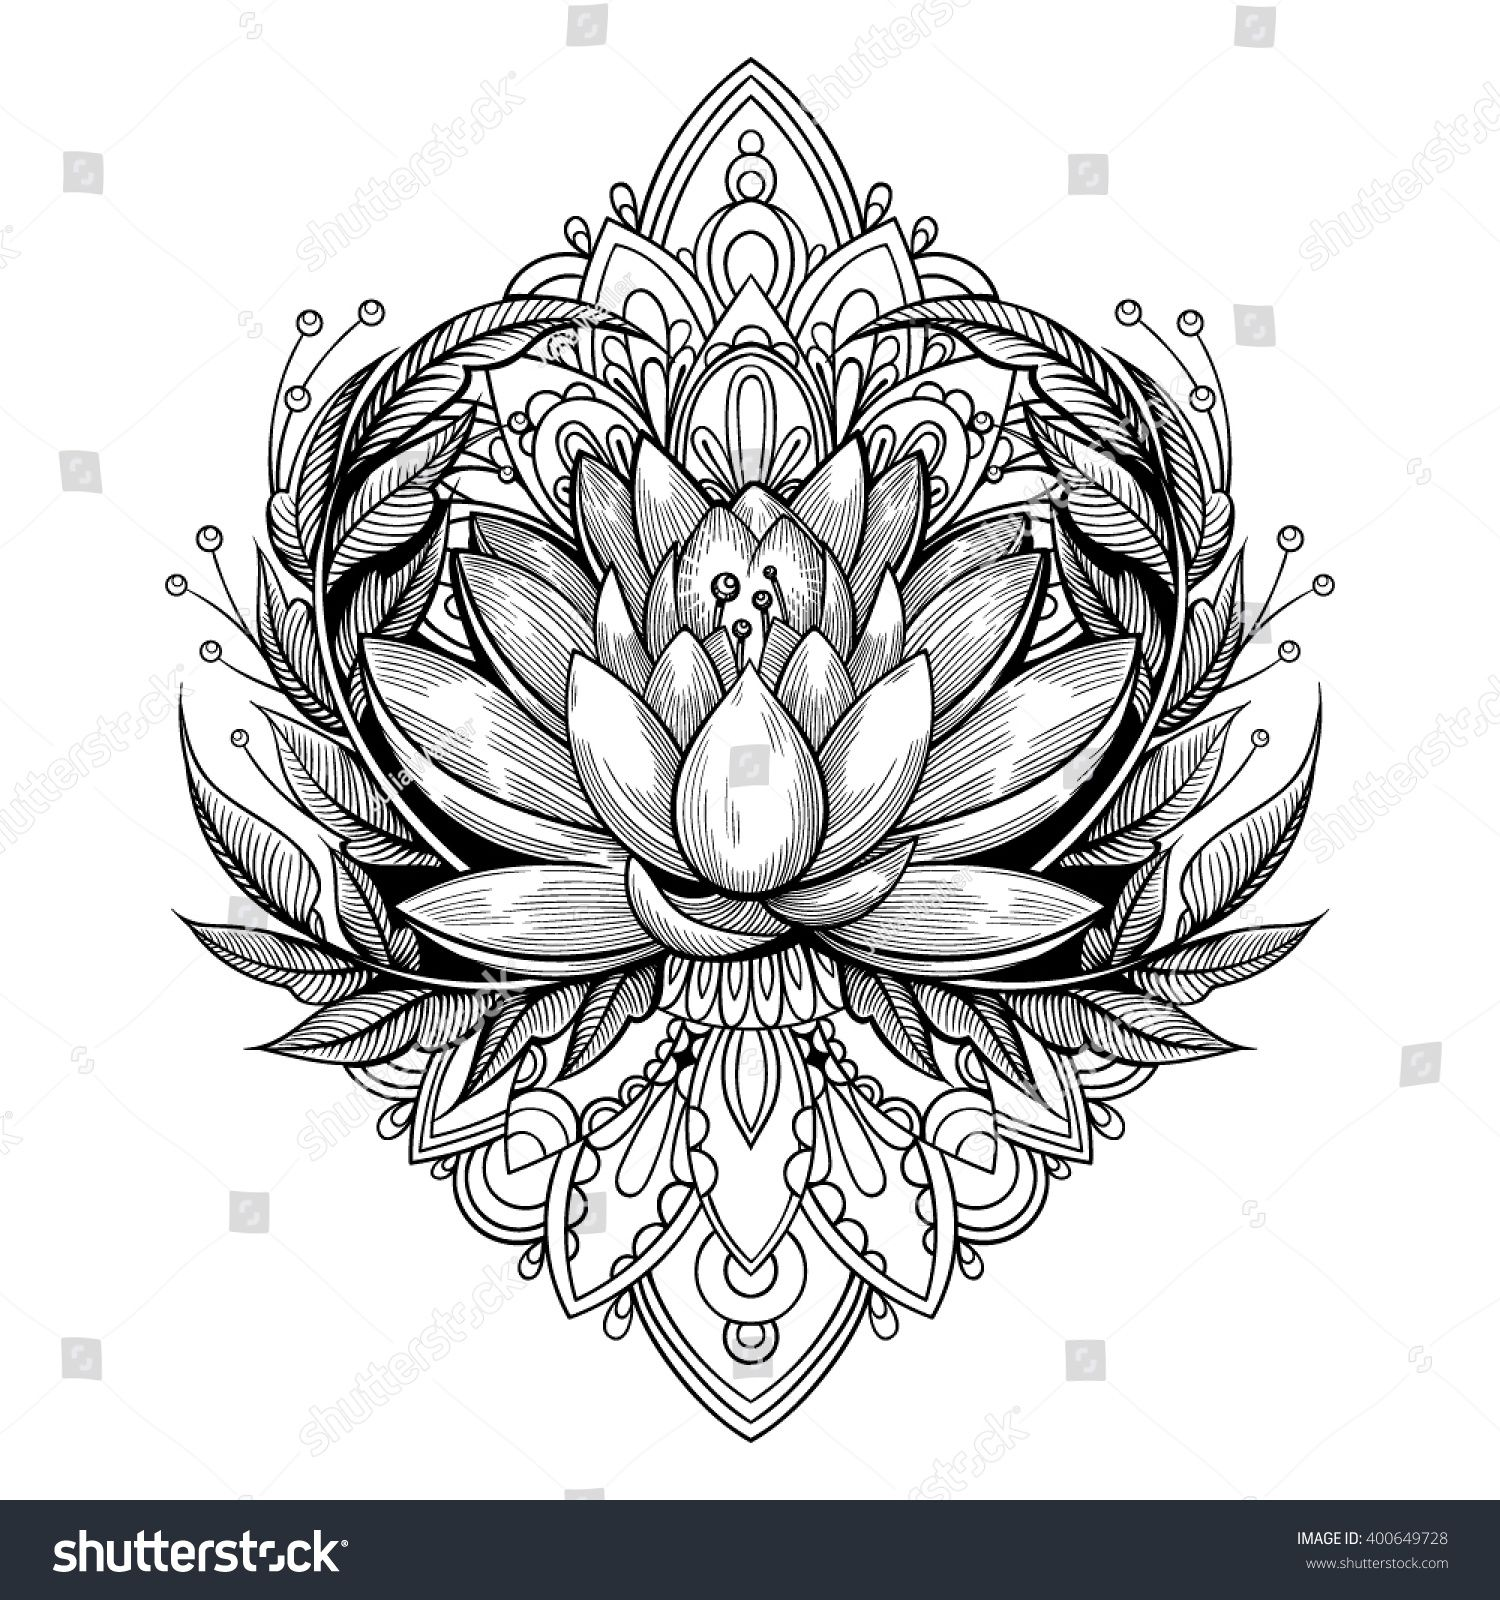 Vector Black and White Tattoo Flower Illustration Black